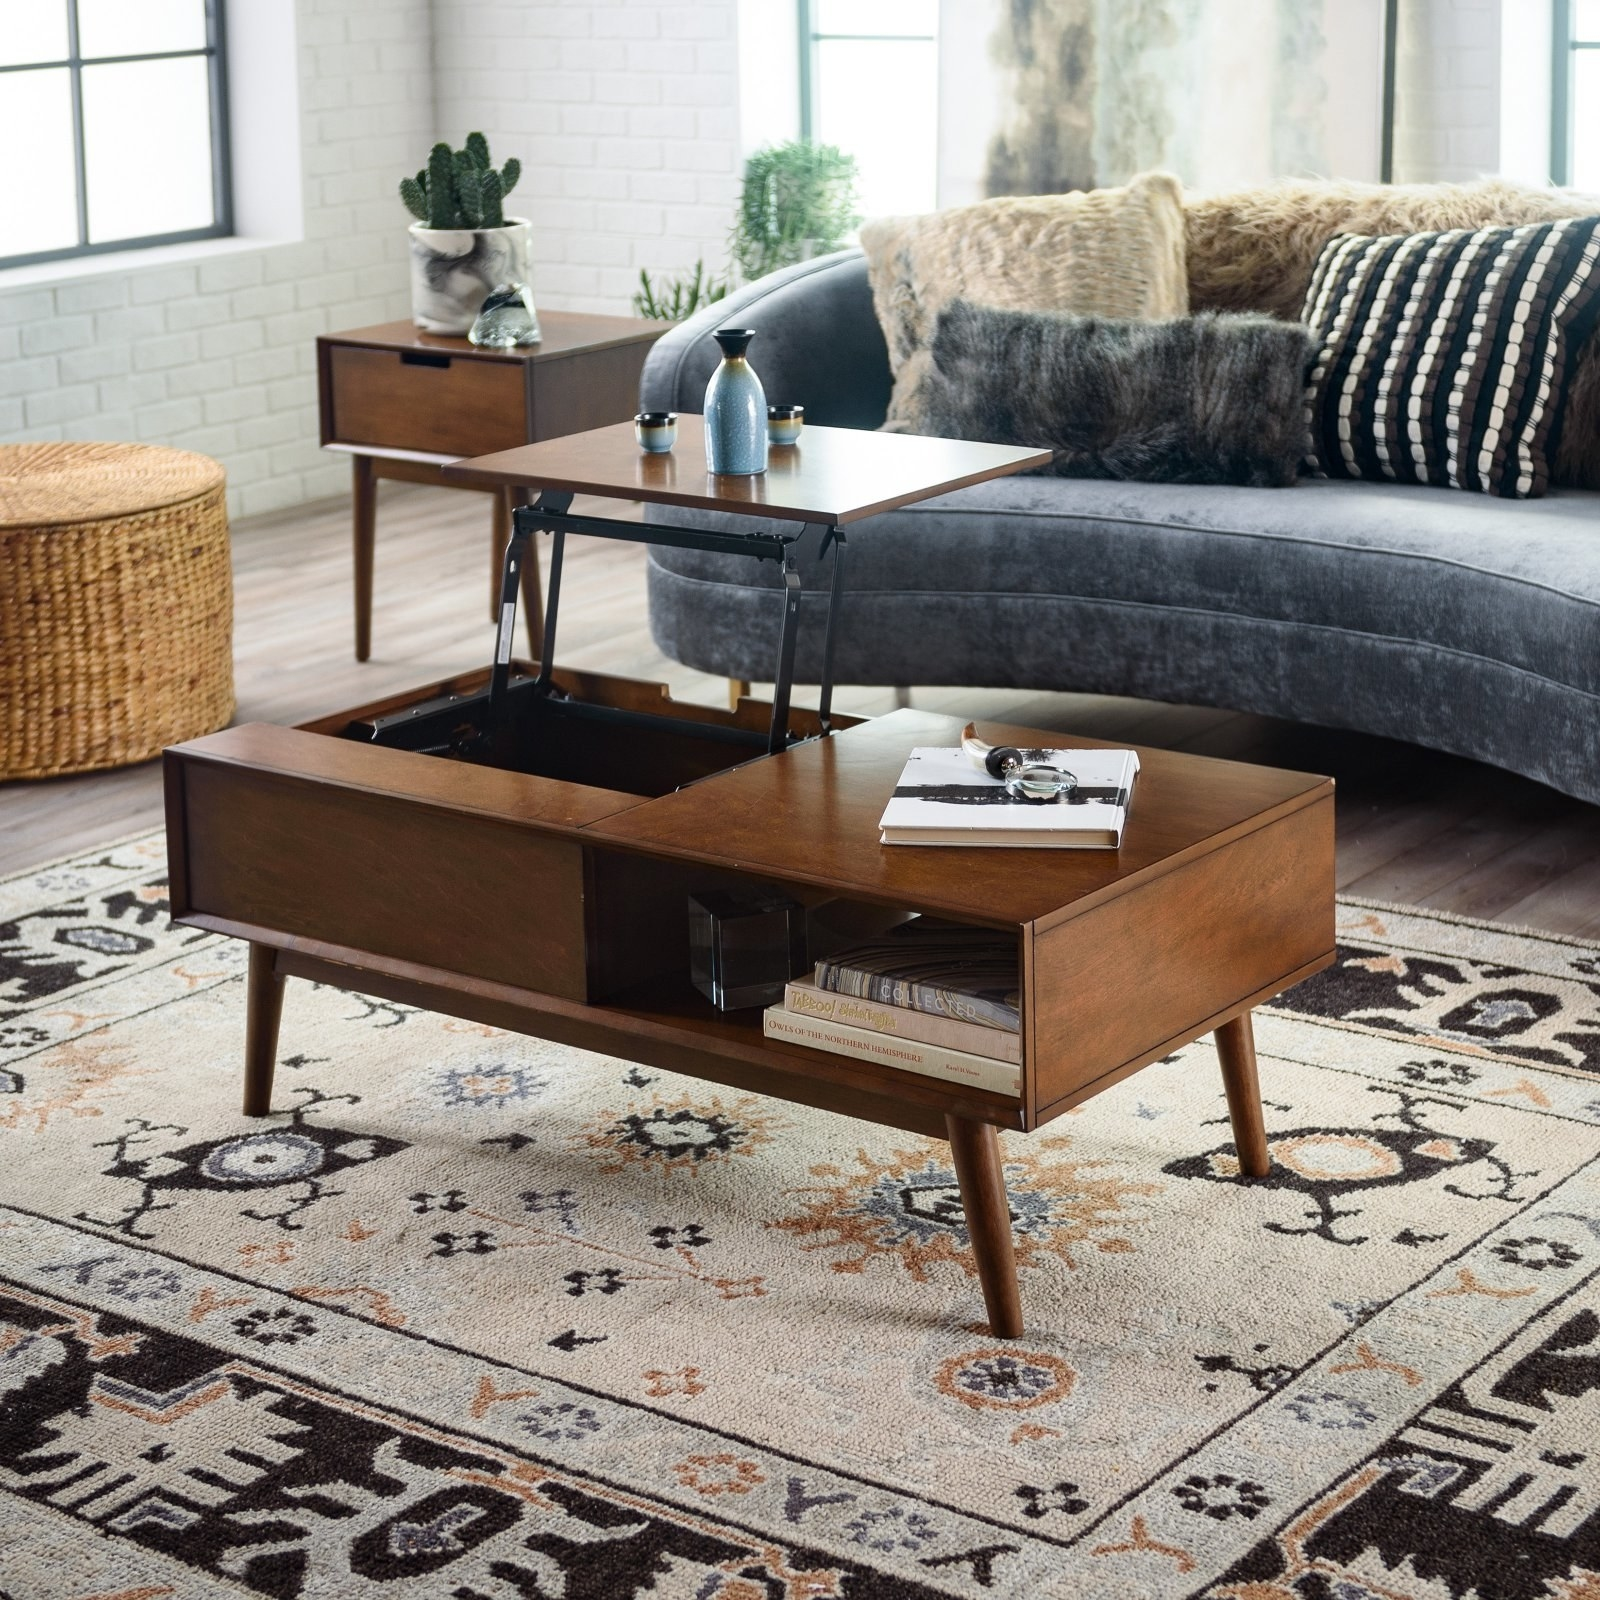 35 Stylish Pieces Of Furniture From Walmart That Only Look Expensive